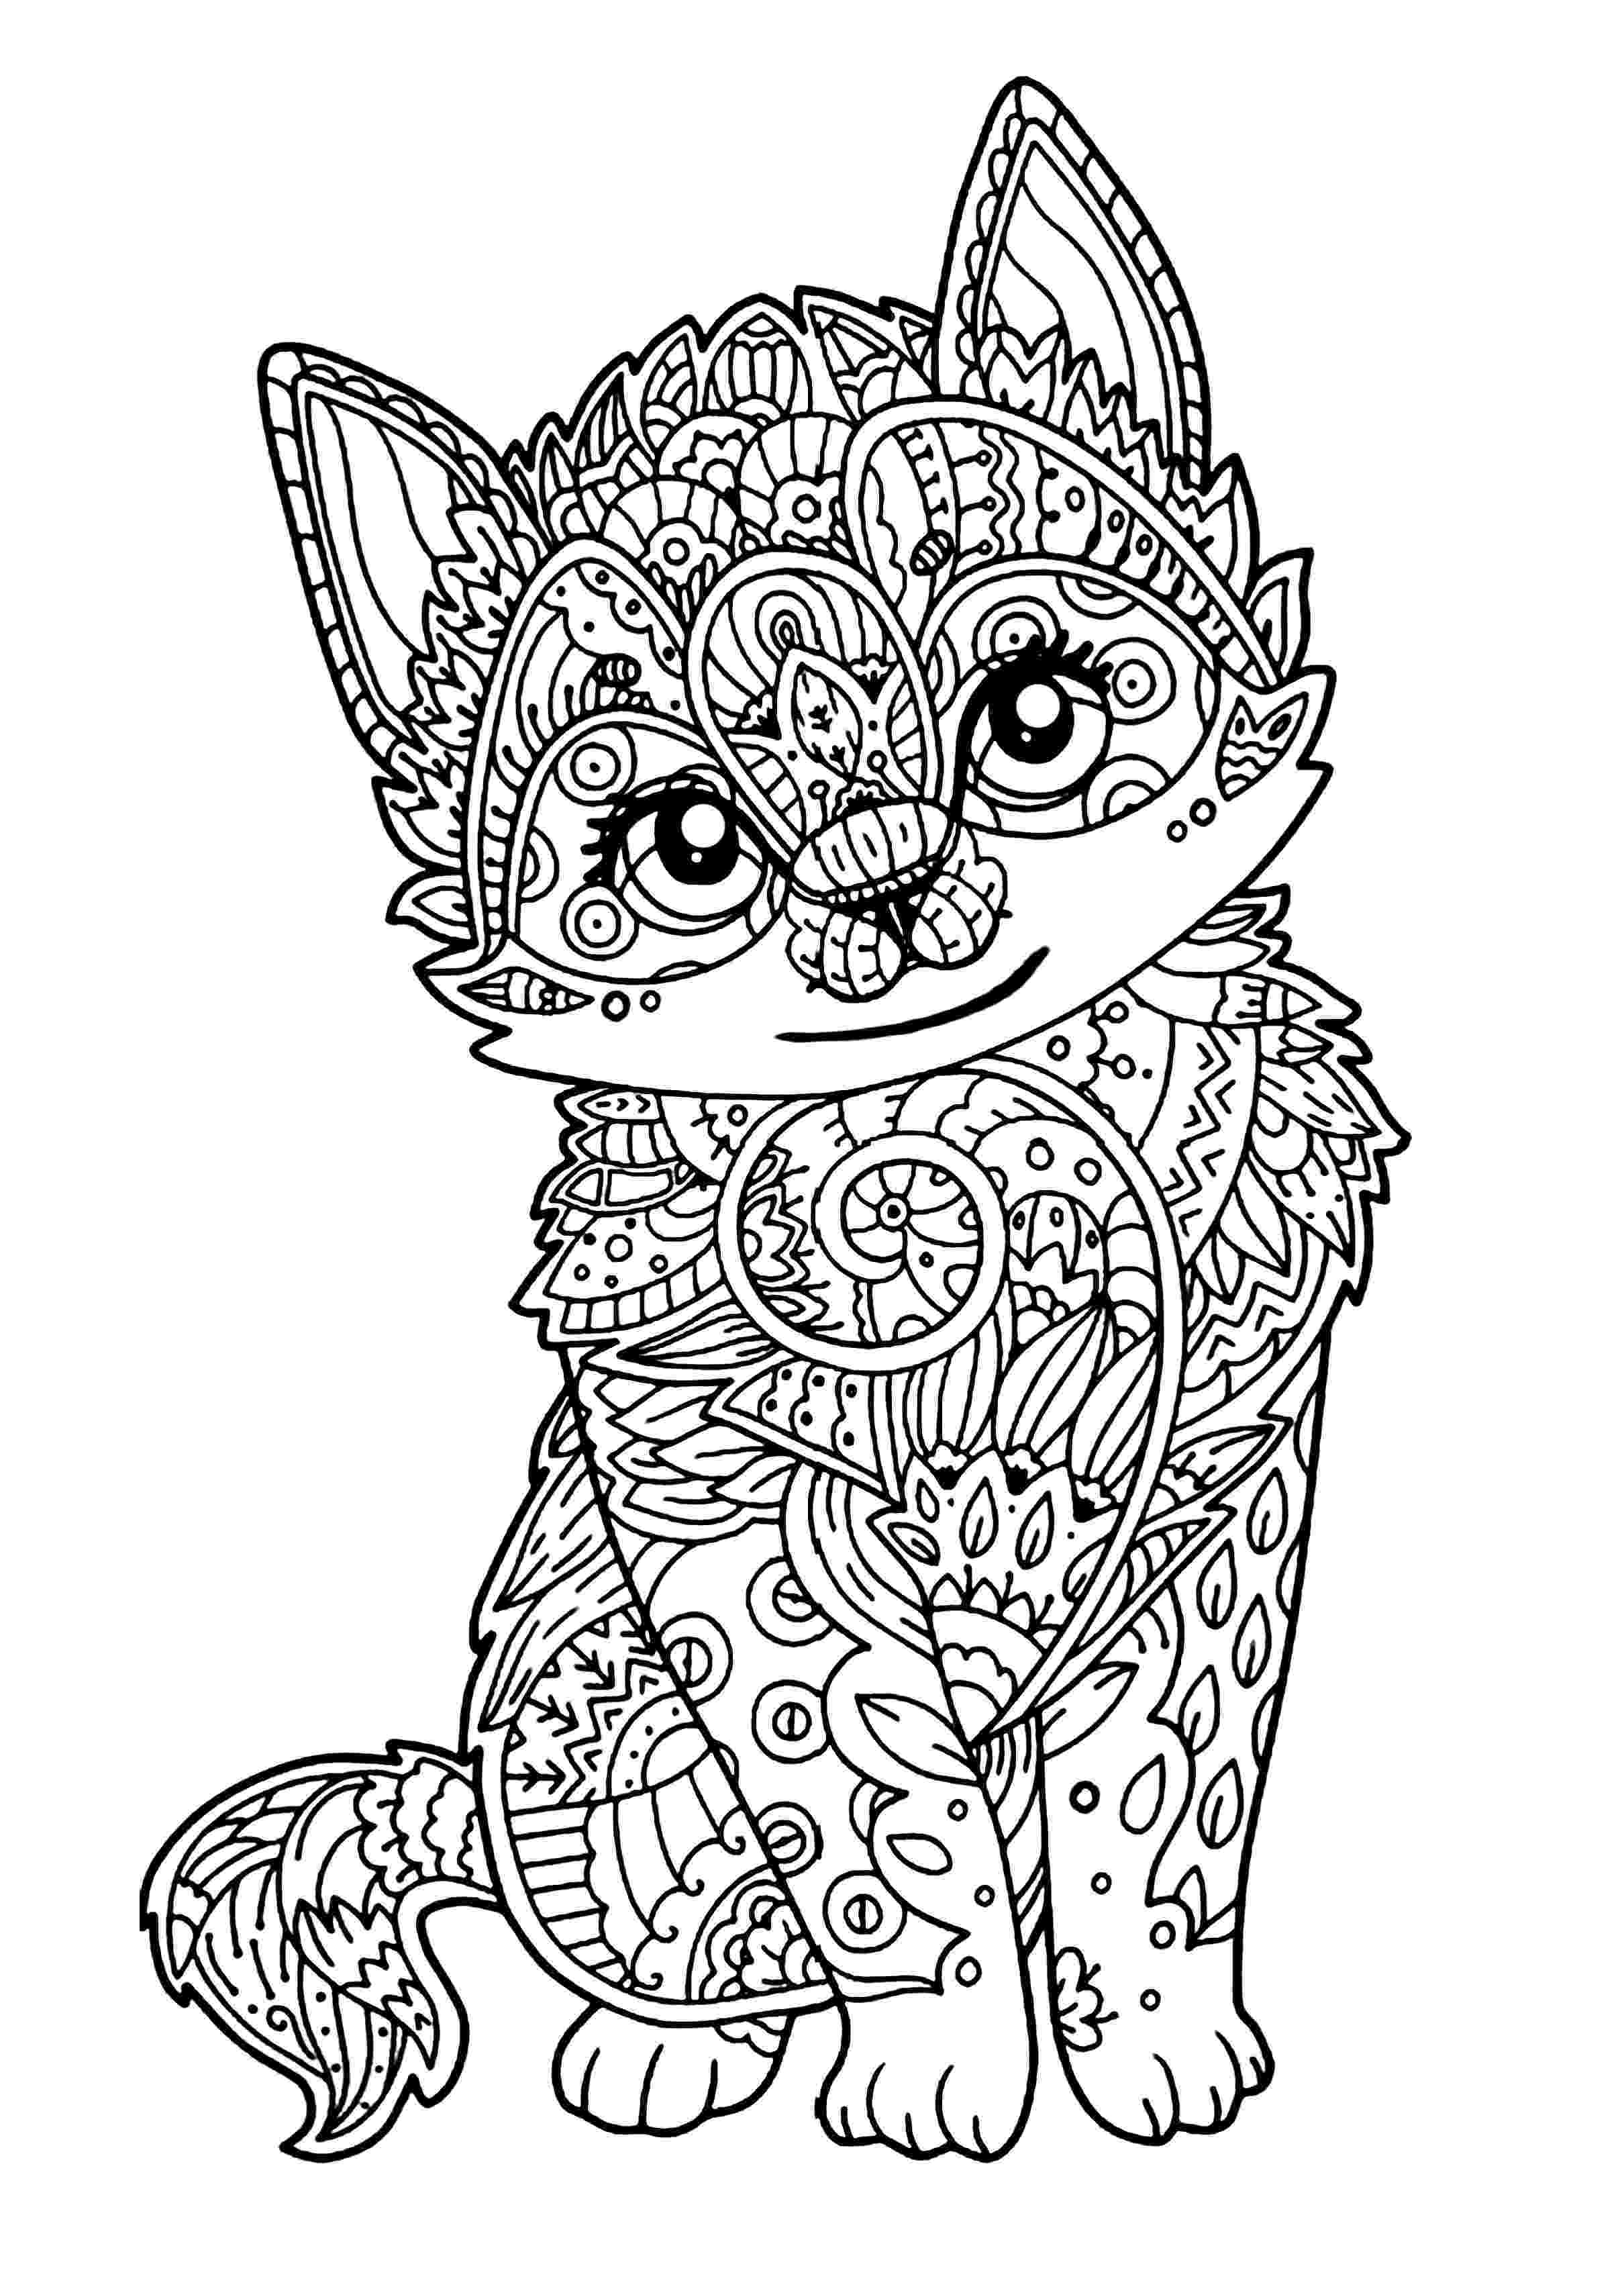 cat coloring sheets cat coloring pages coloring cat sheets